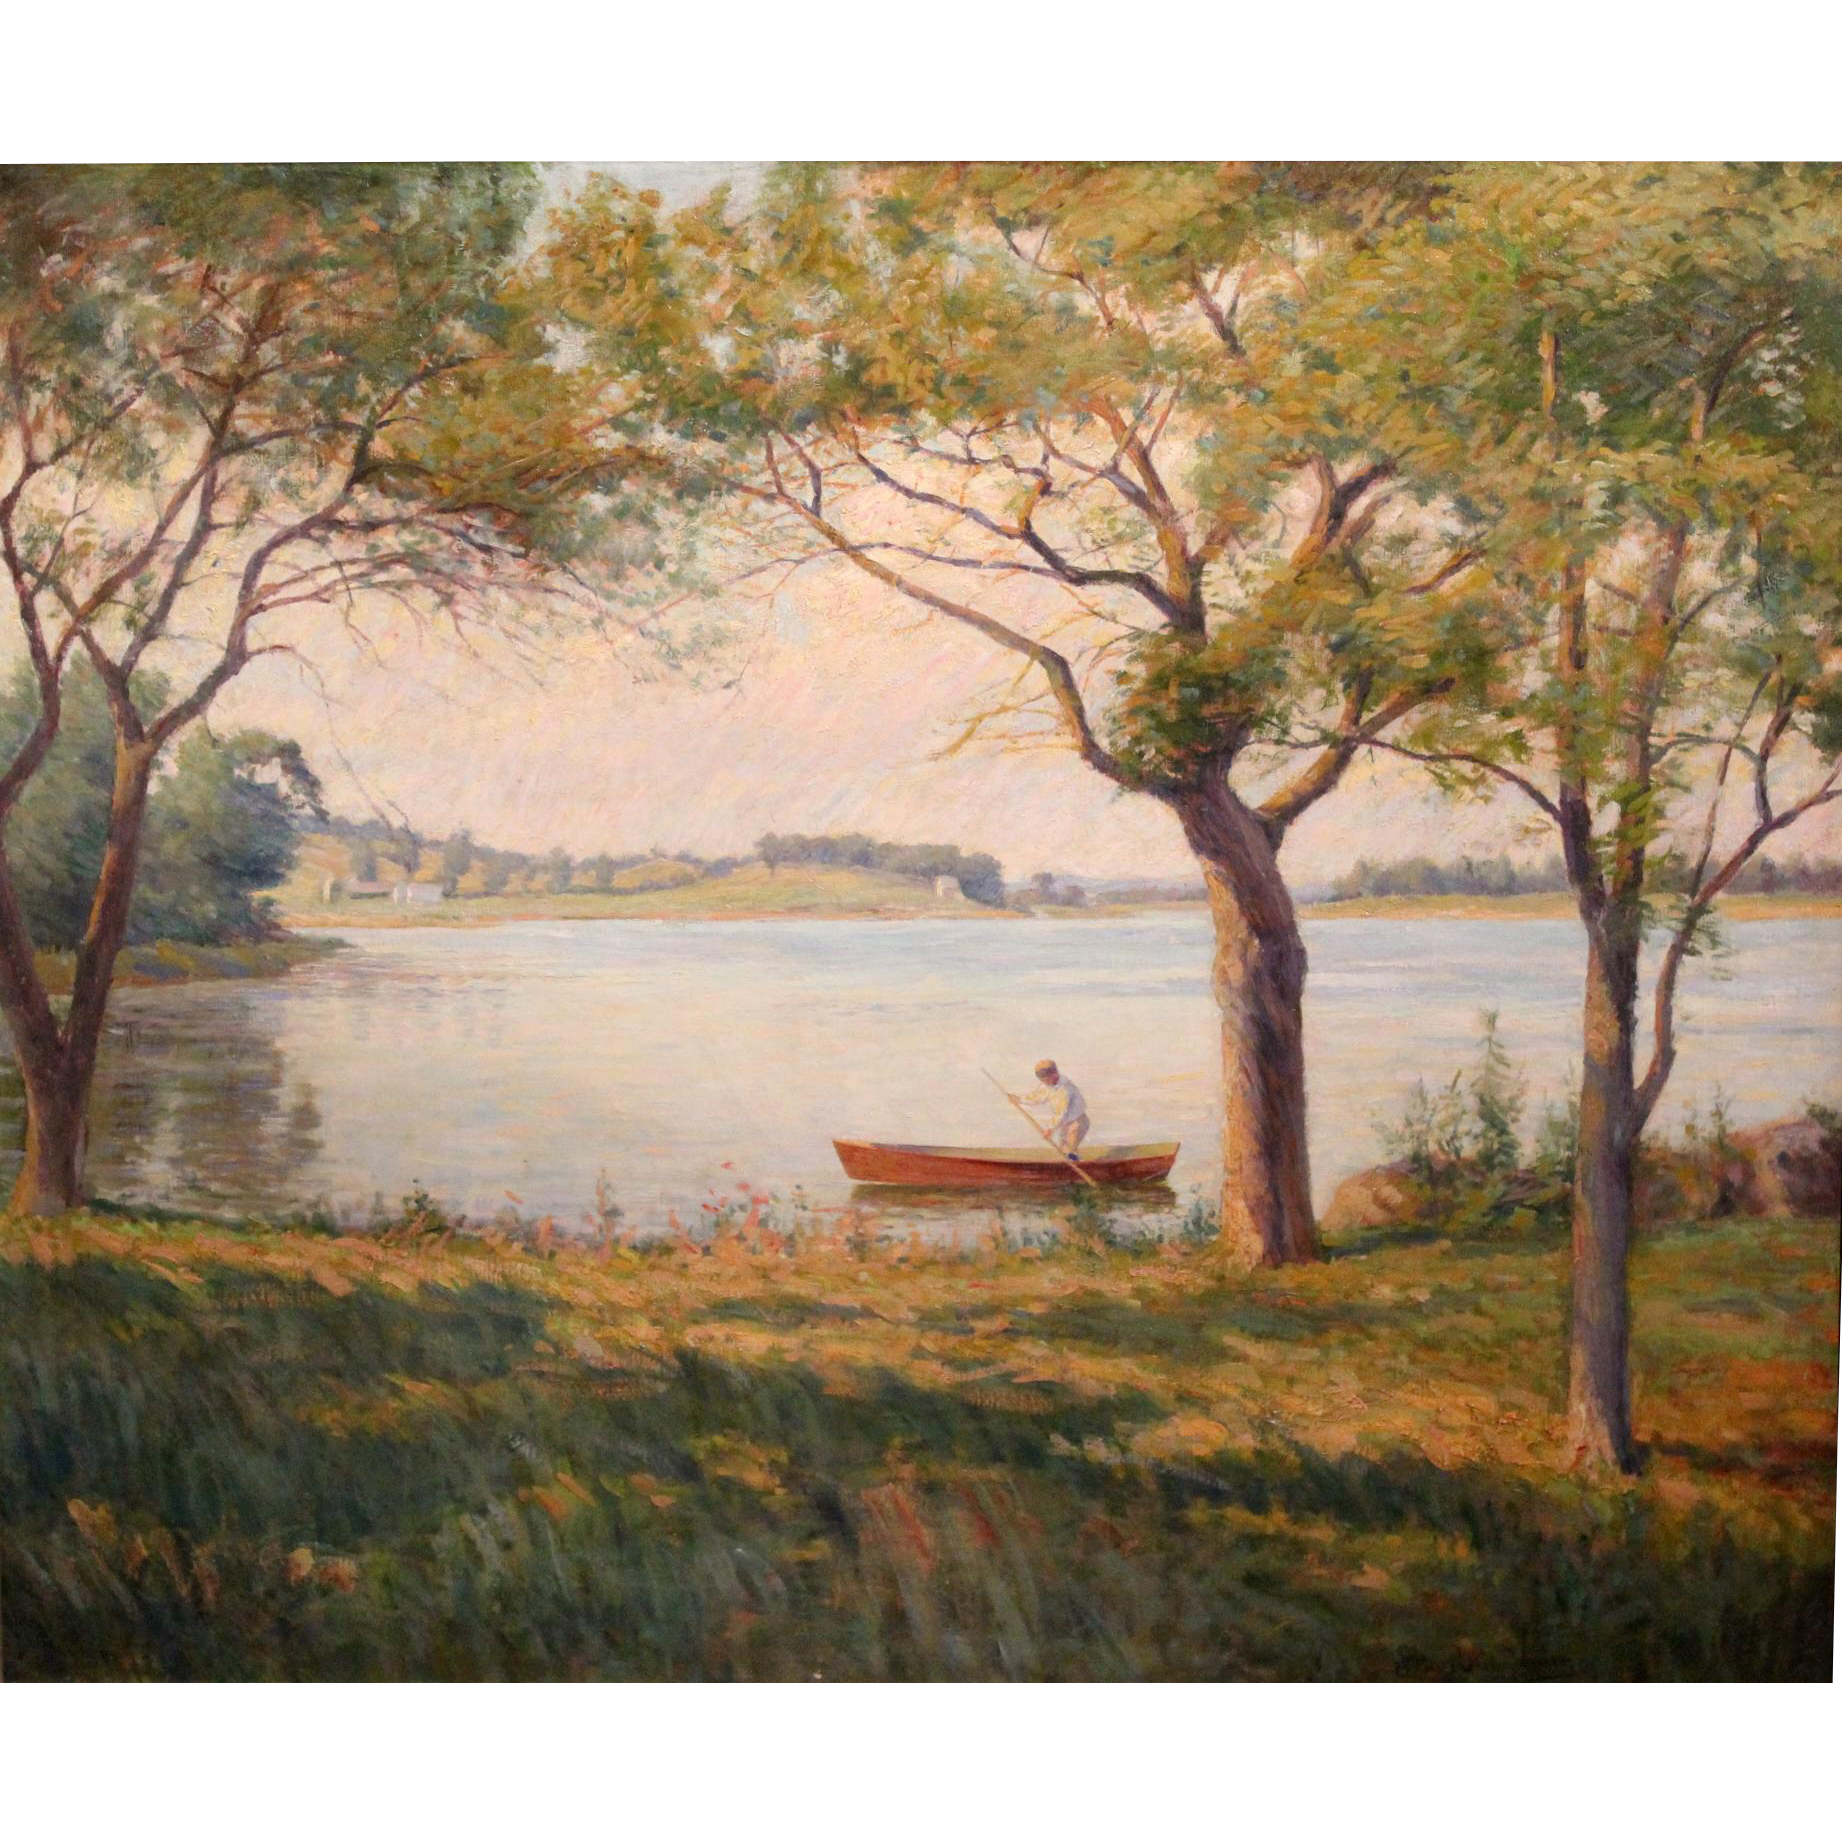 Edward Reynolds Kingsbury Oil Painting - The Lone Boater, Summer Afternoon